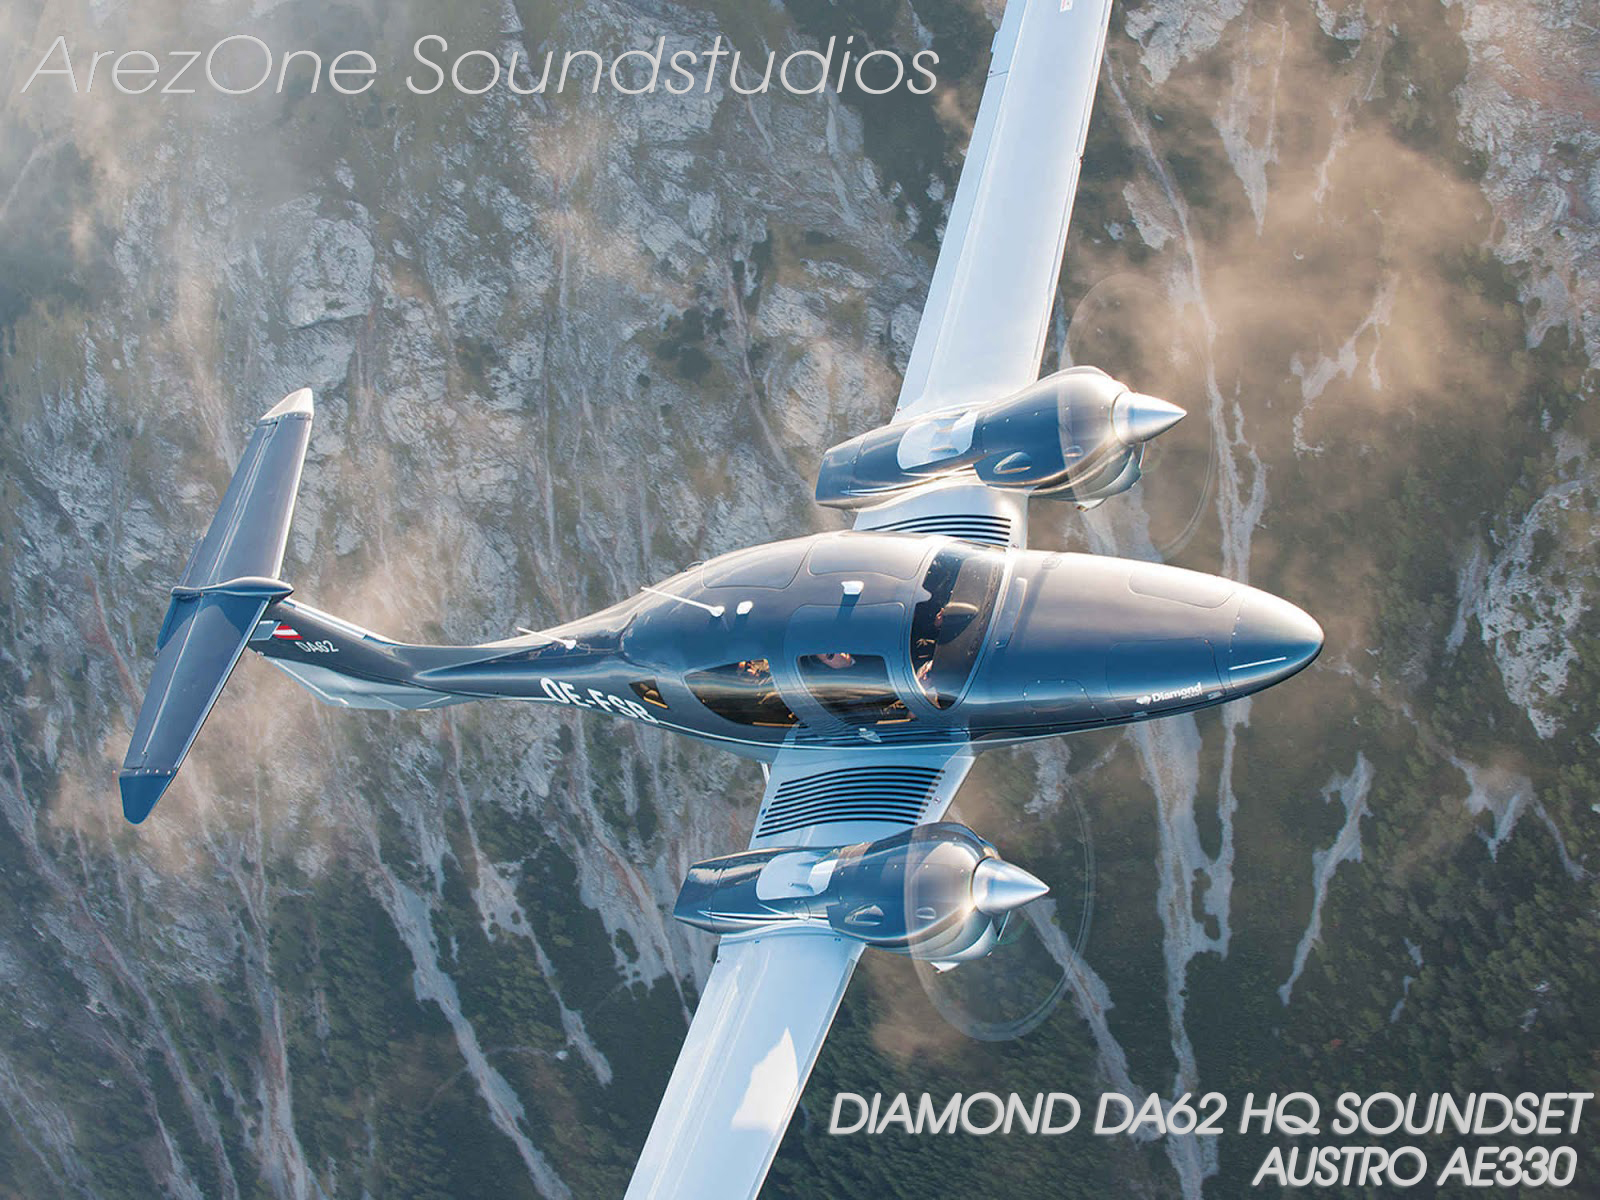 AREZONE-AVIATION SOUNDSTUDIOS - AE330 HQ SOUNDSET FSX P3D